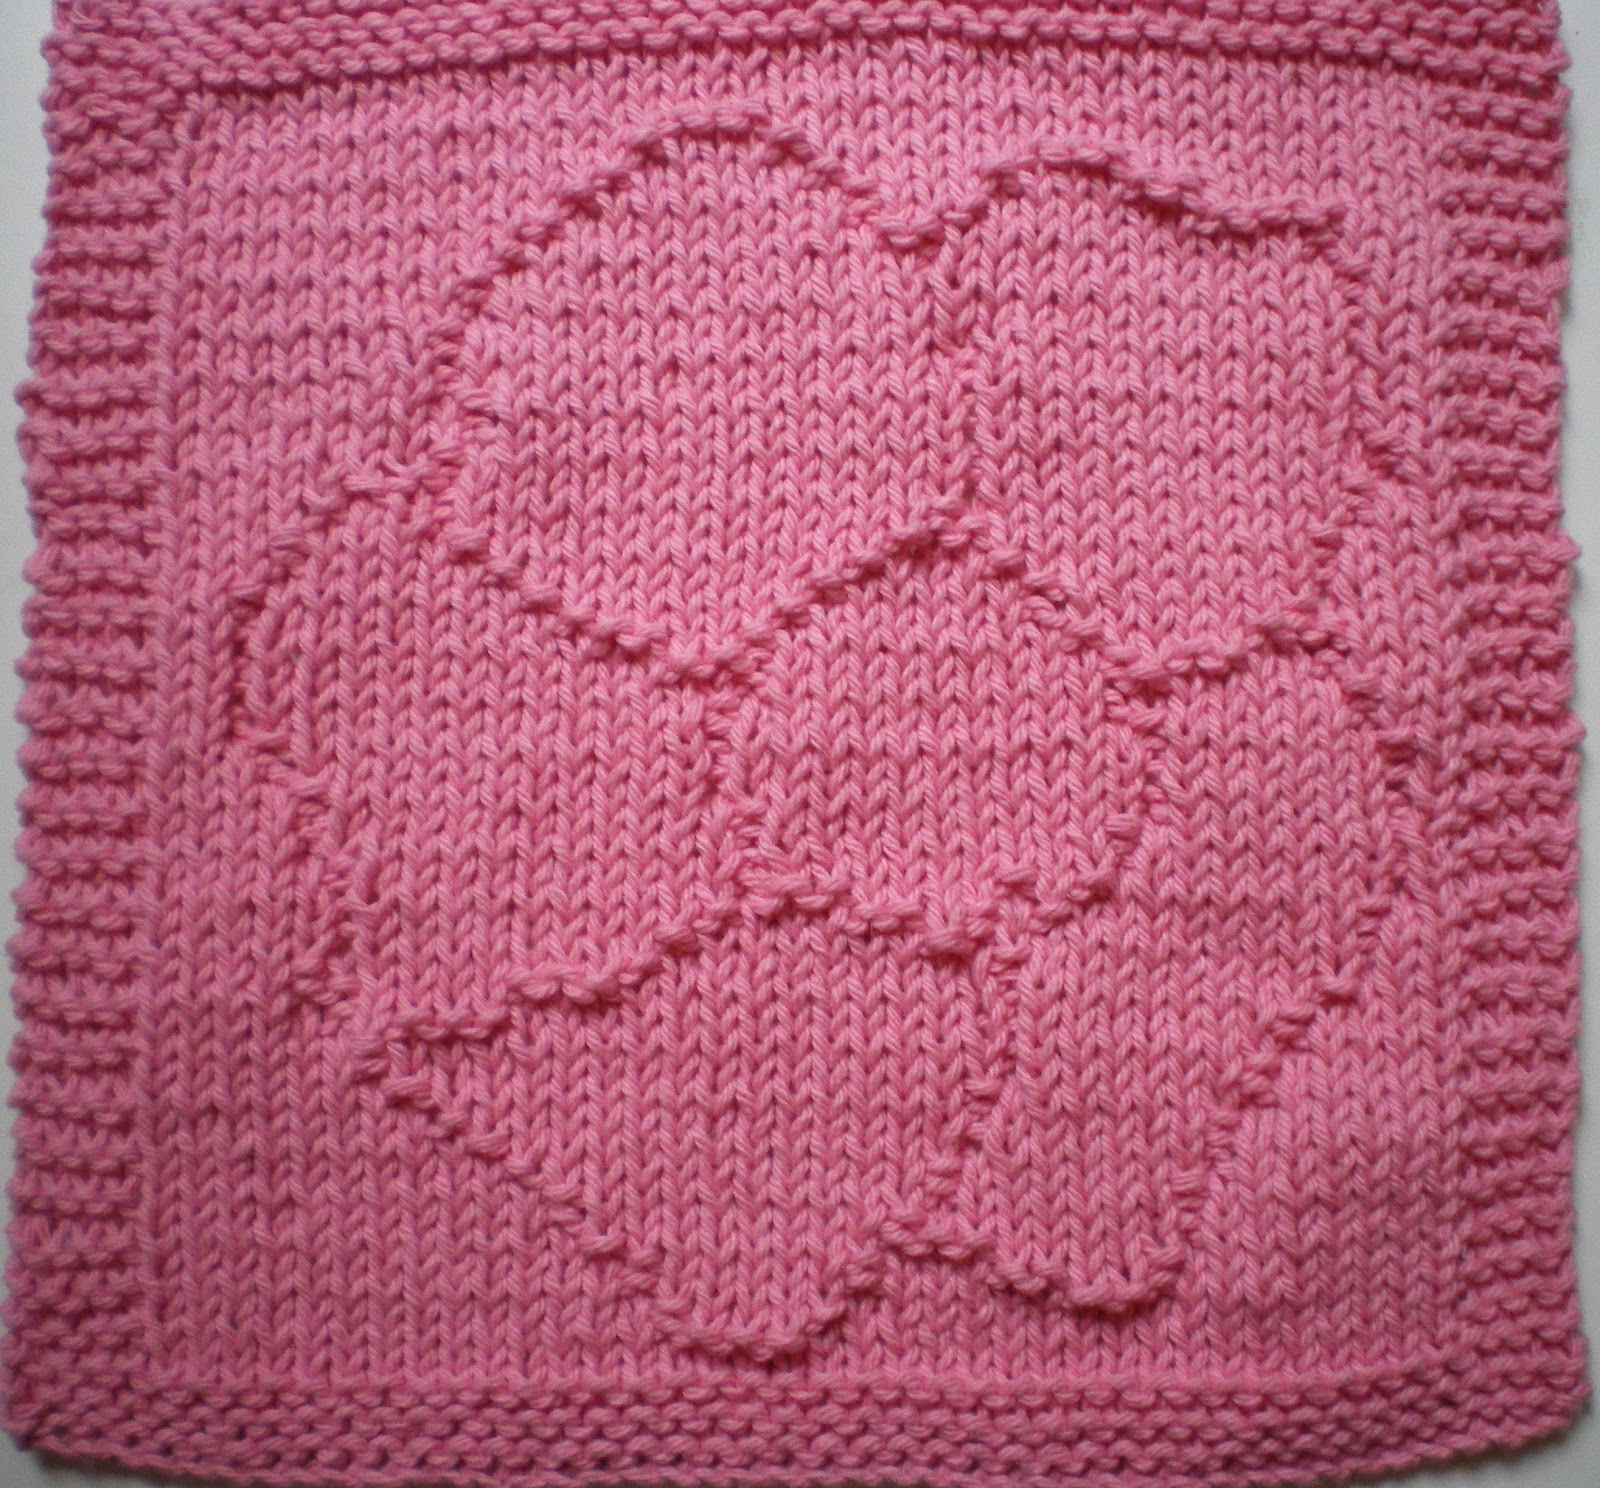 Knitting With Anne: Wild Rose Textured Dishcloth